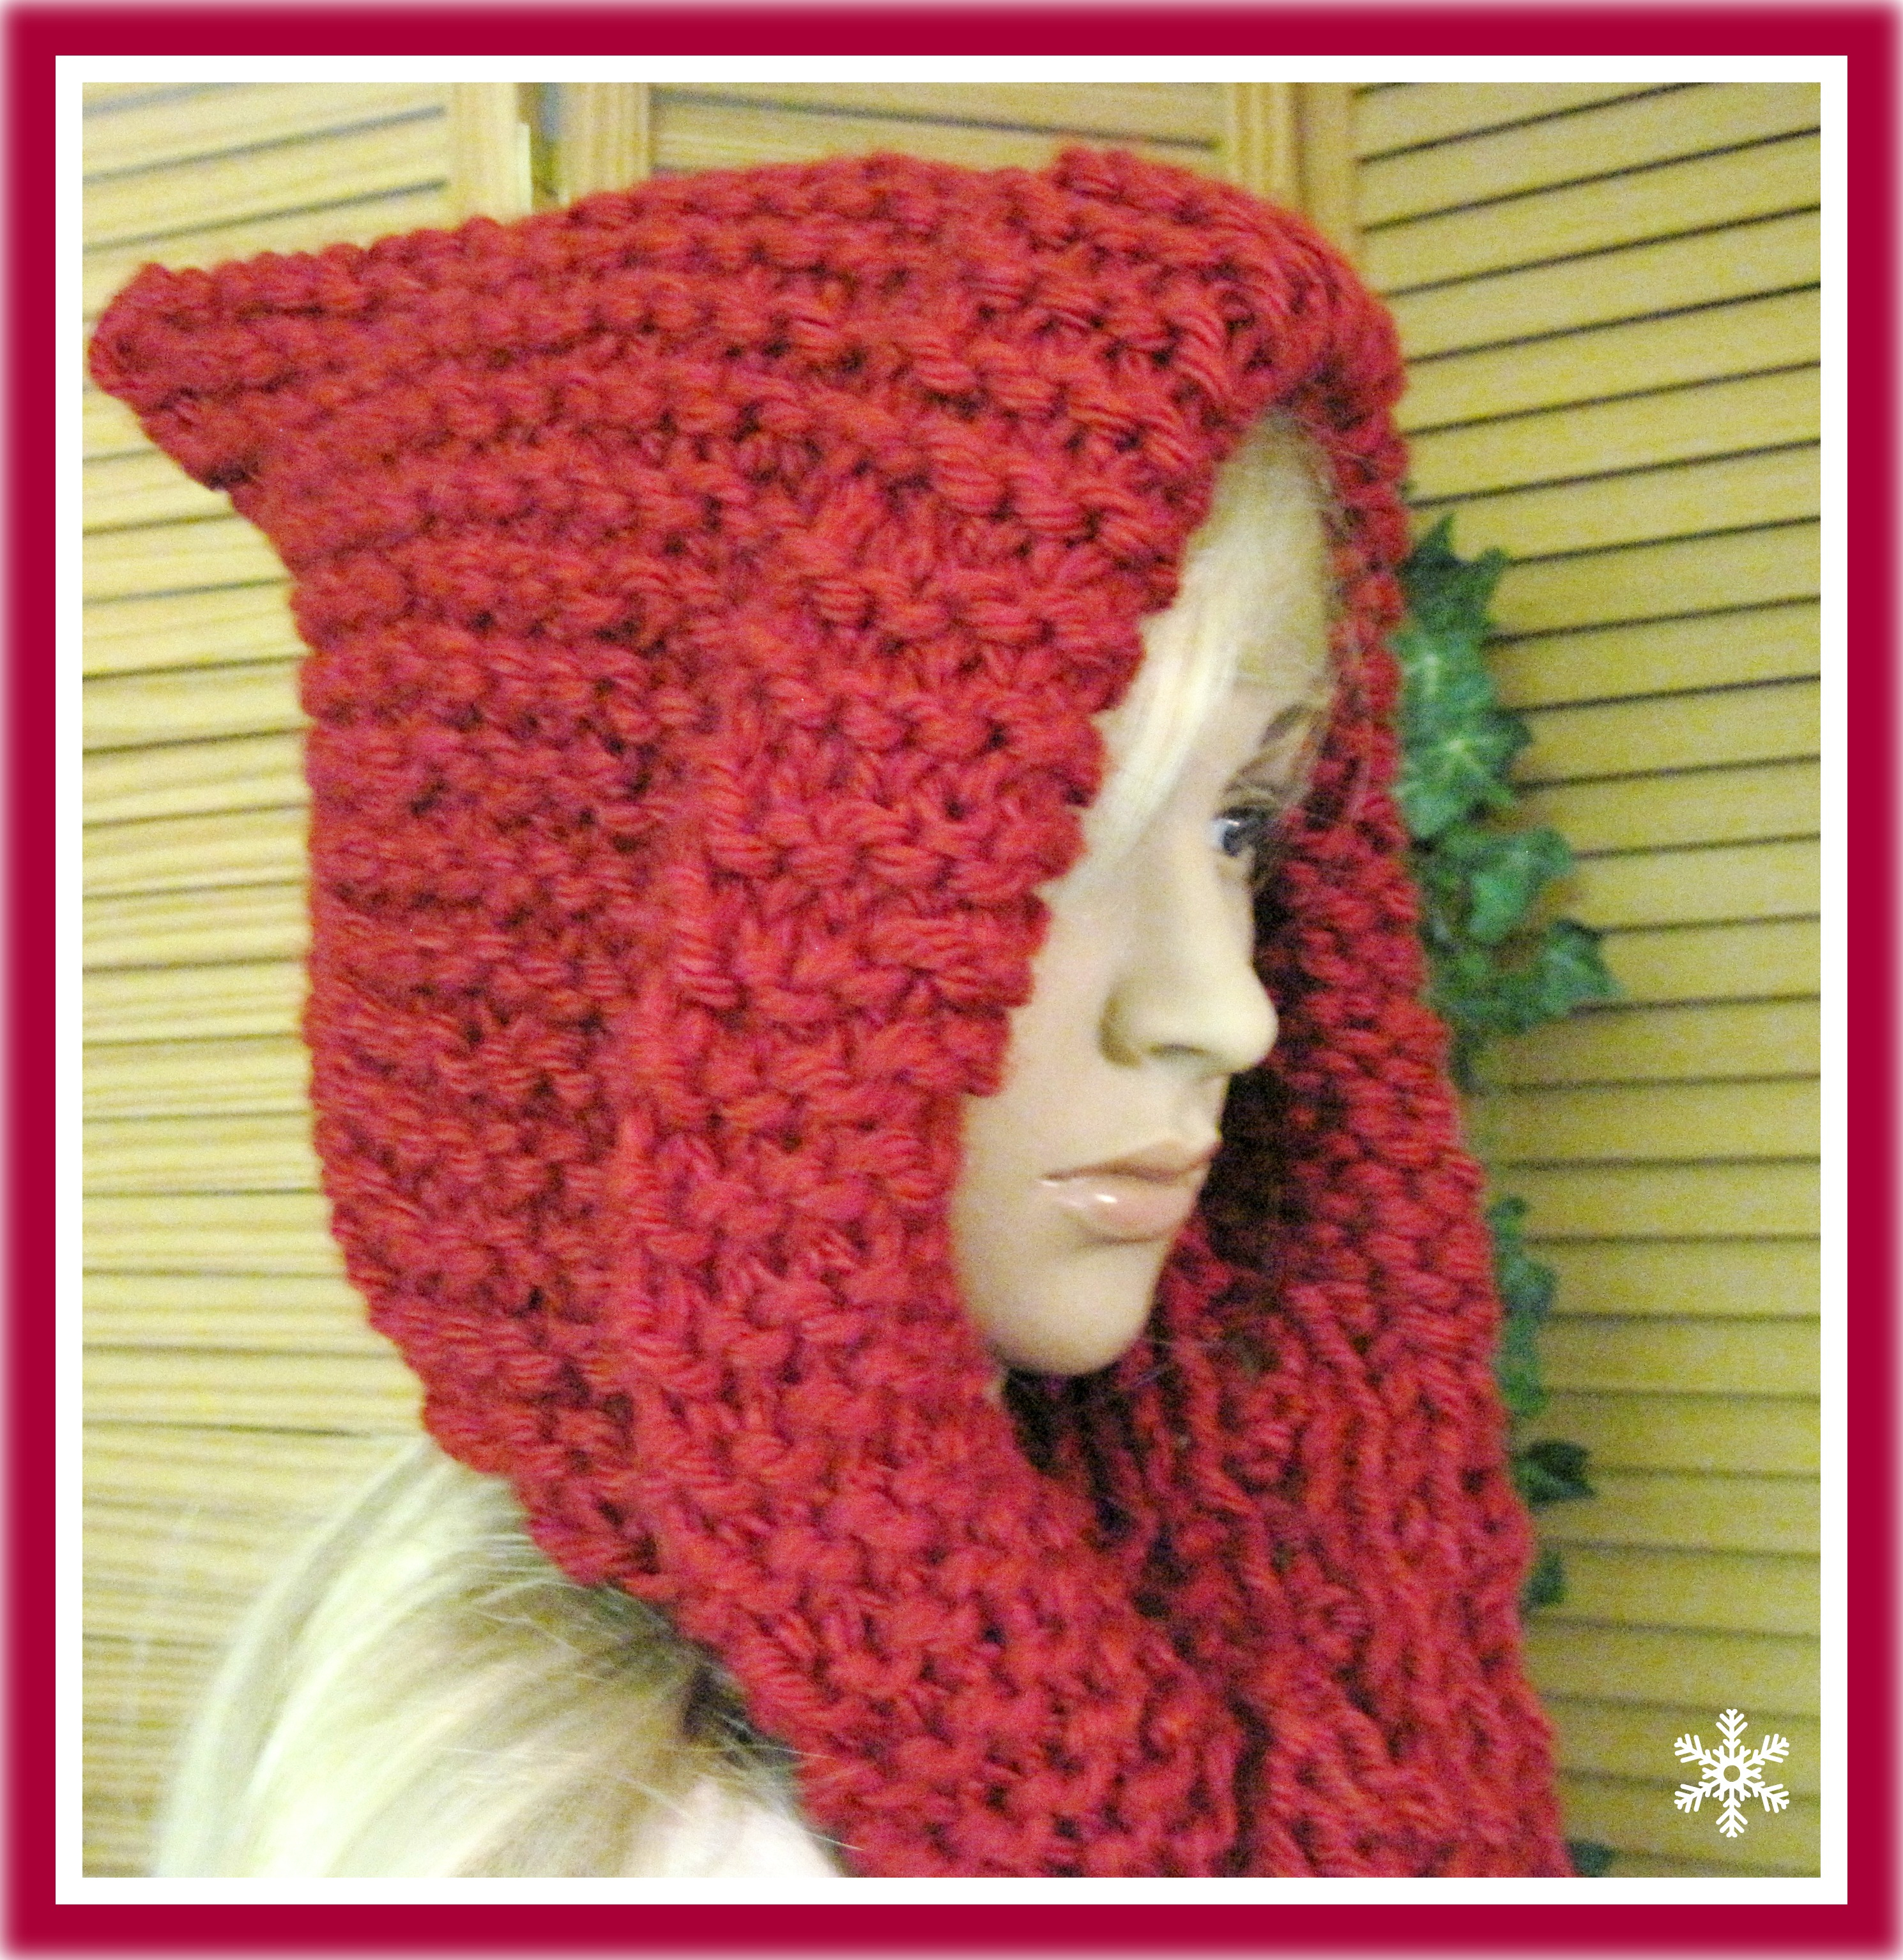 Knitted Hood Scarf Pattern Little Red Riding Hood Hooded Scarf In Bulky Yarn Knitting Pattern Adult Size